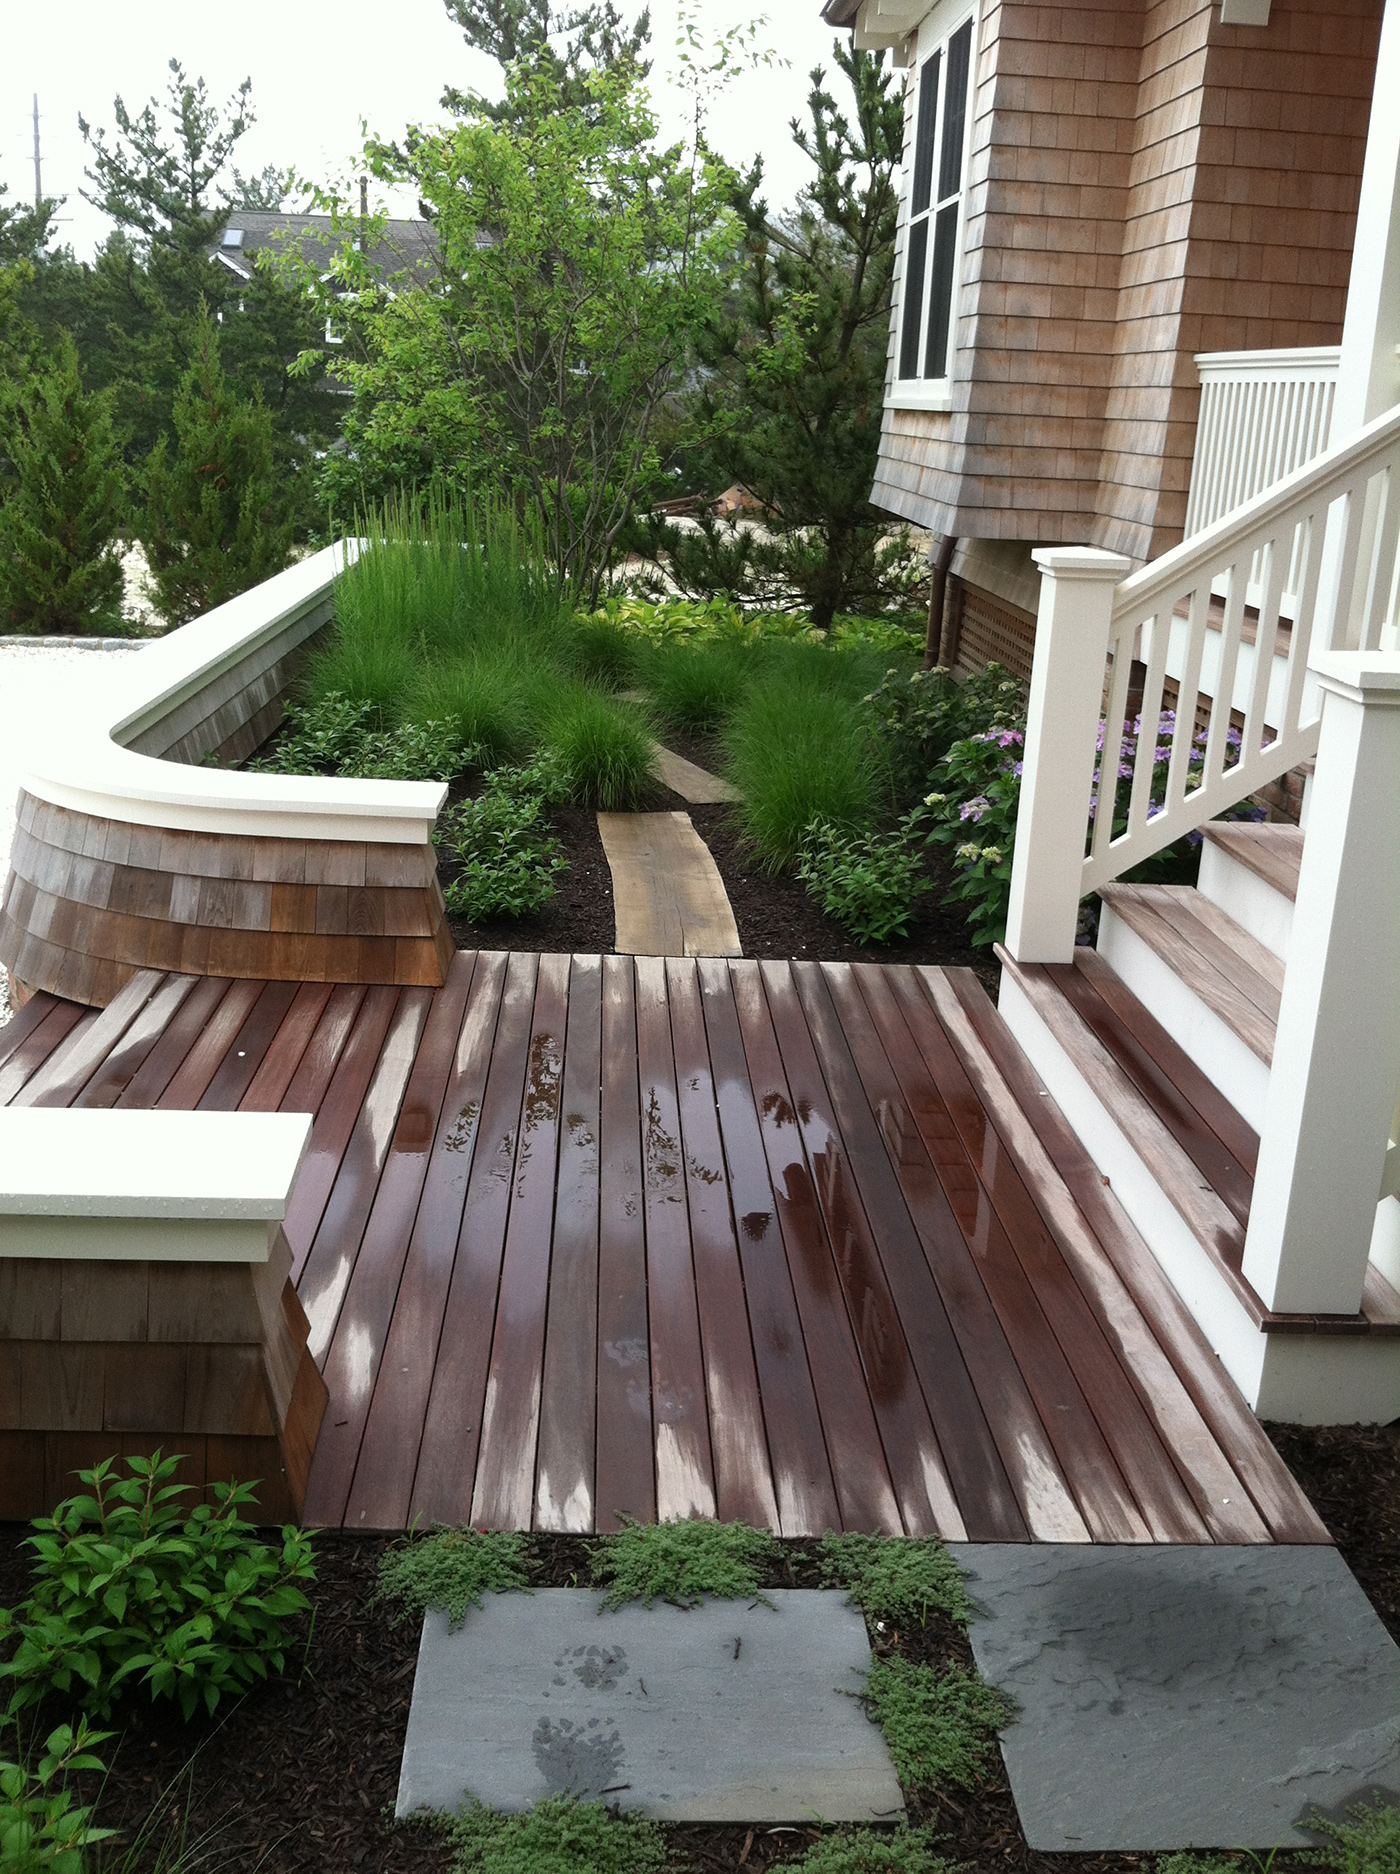 Oceanfront Beauty - Luxury Landscaping at the Jersey Shore